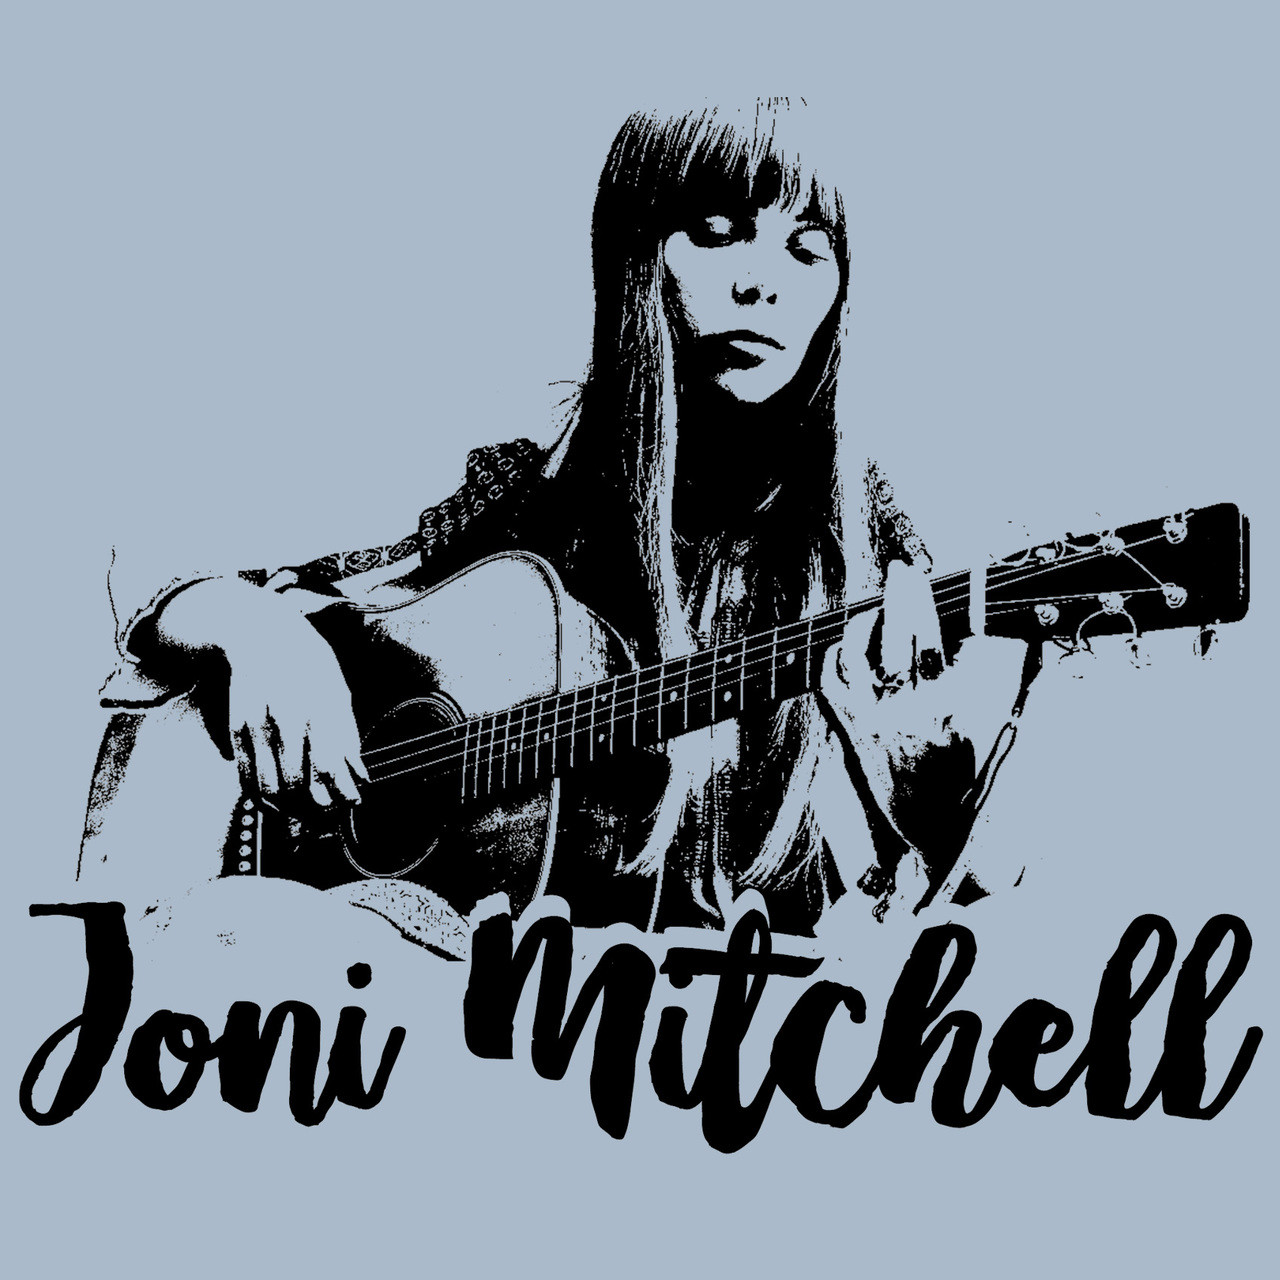 Reloaded twaddle – RT @iamkoume: #今聴いてます  River - Joni Mitchell (Blue) https://t.co/07QigeUf7H http...